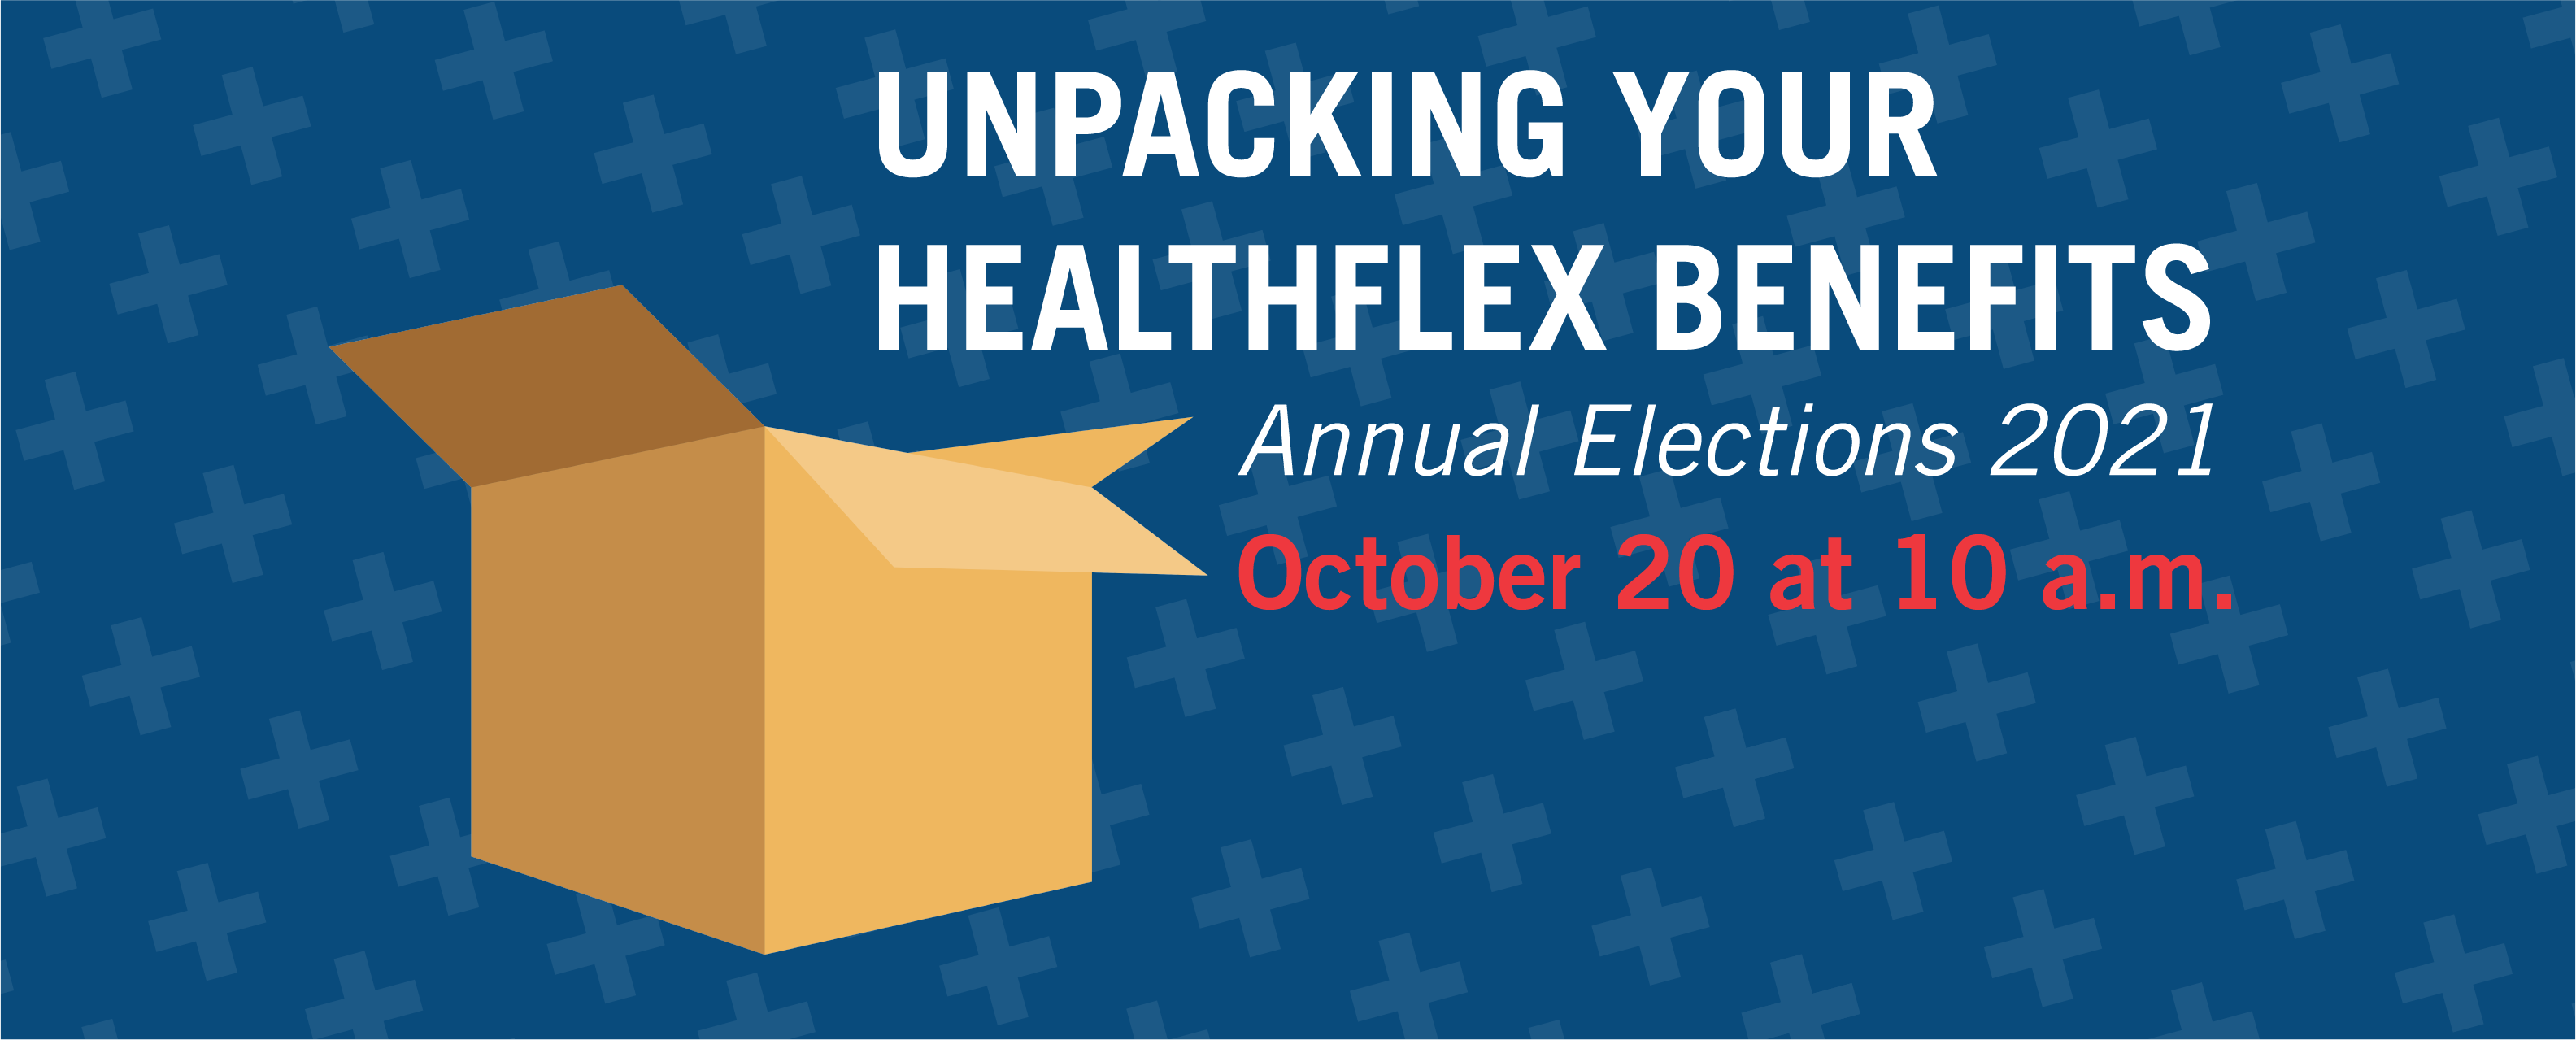 Unpacking Your HealthFlex Benefits